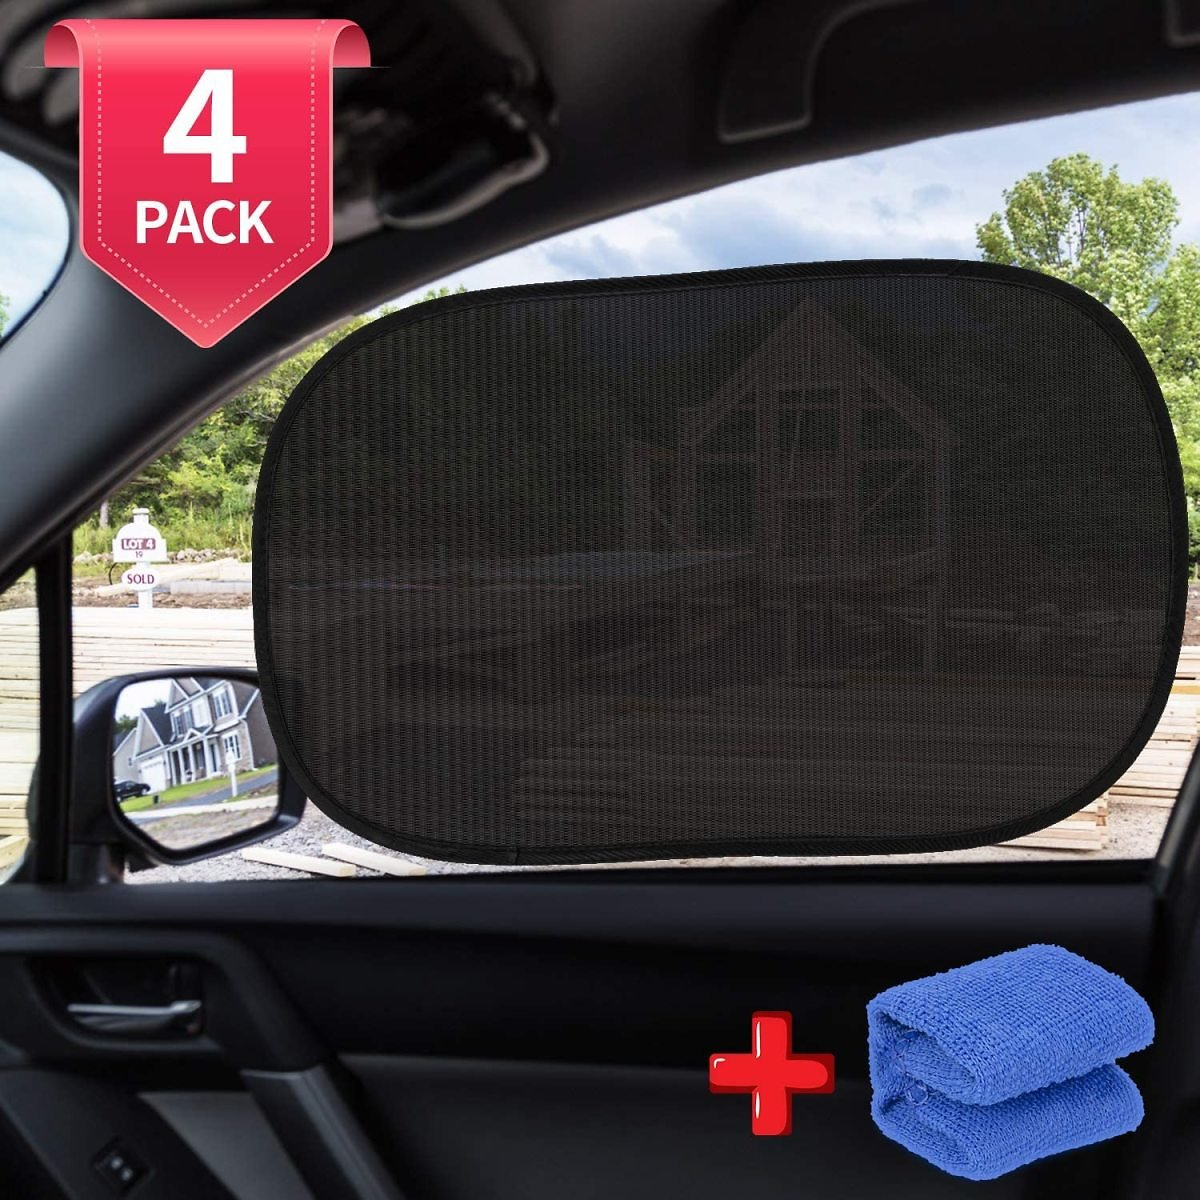 Car Window Shade, Automotive Interior Sun Protection Car Window Shade for Baby Cling Sunshade for Side Windows 99% UV Rays Prote